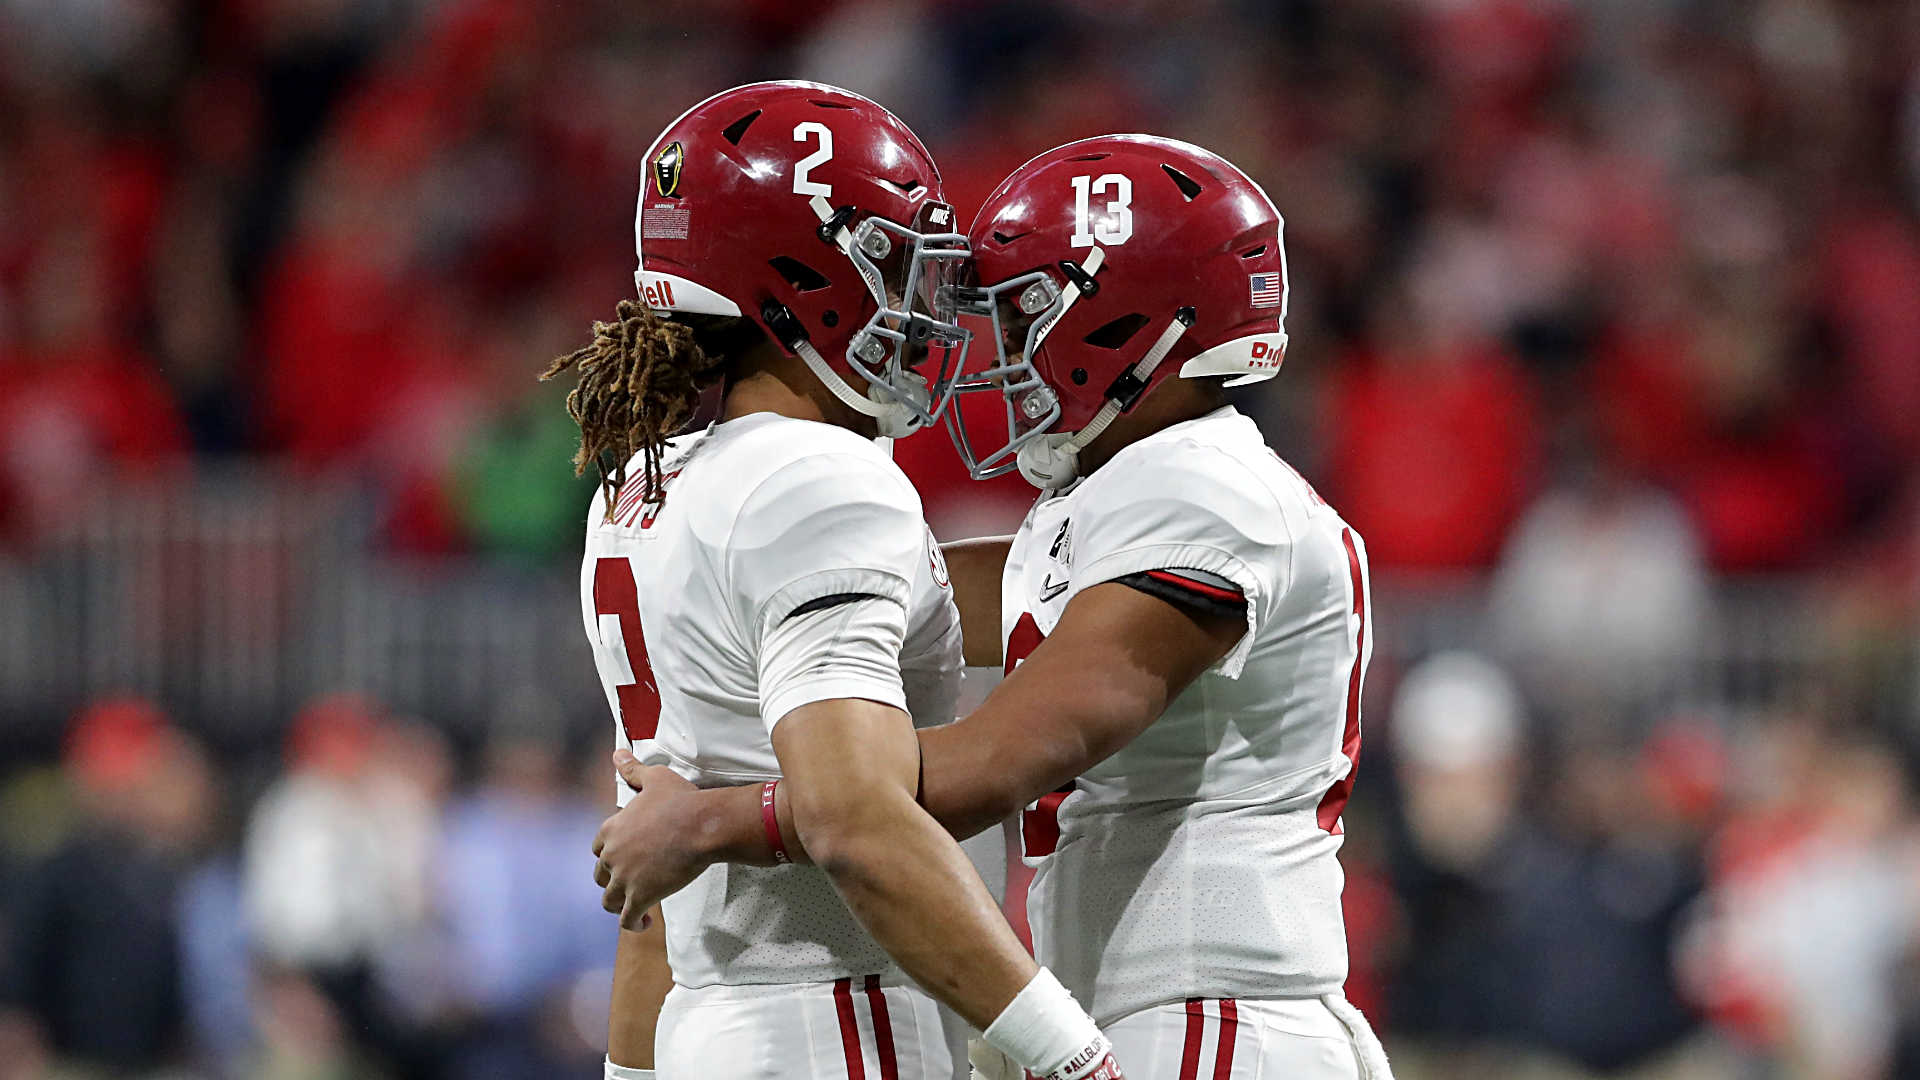 Who Will be the Alabama Starting Quarterback?